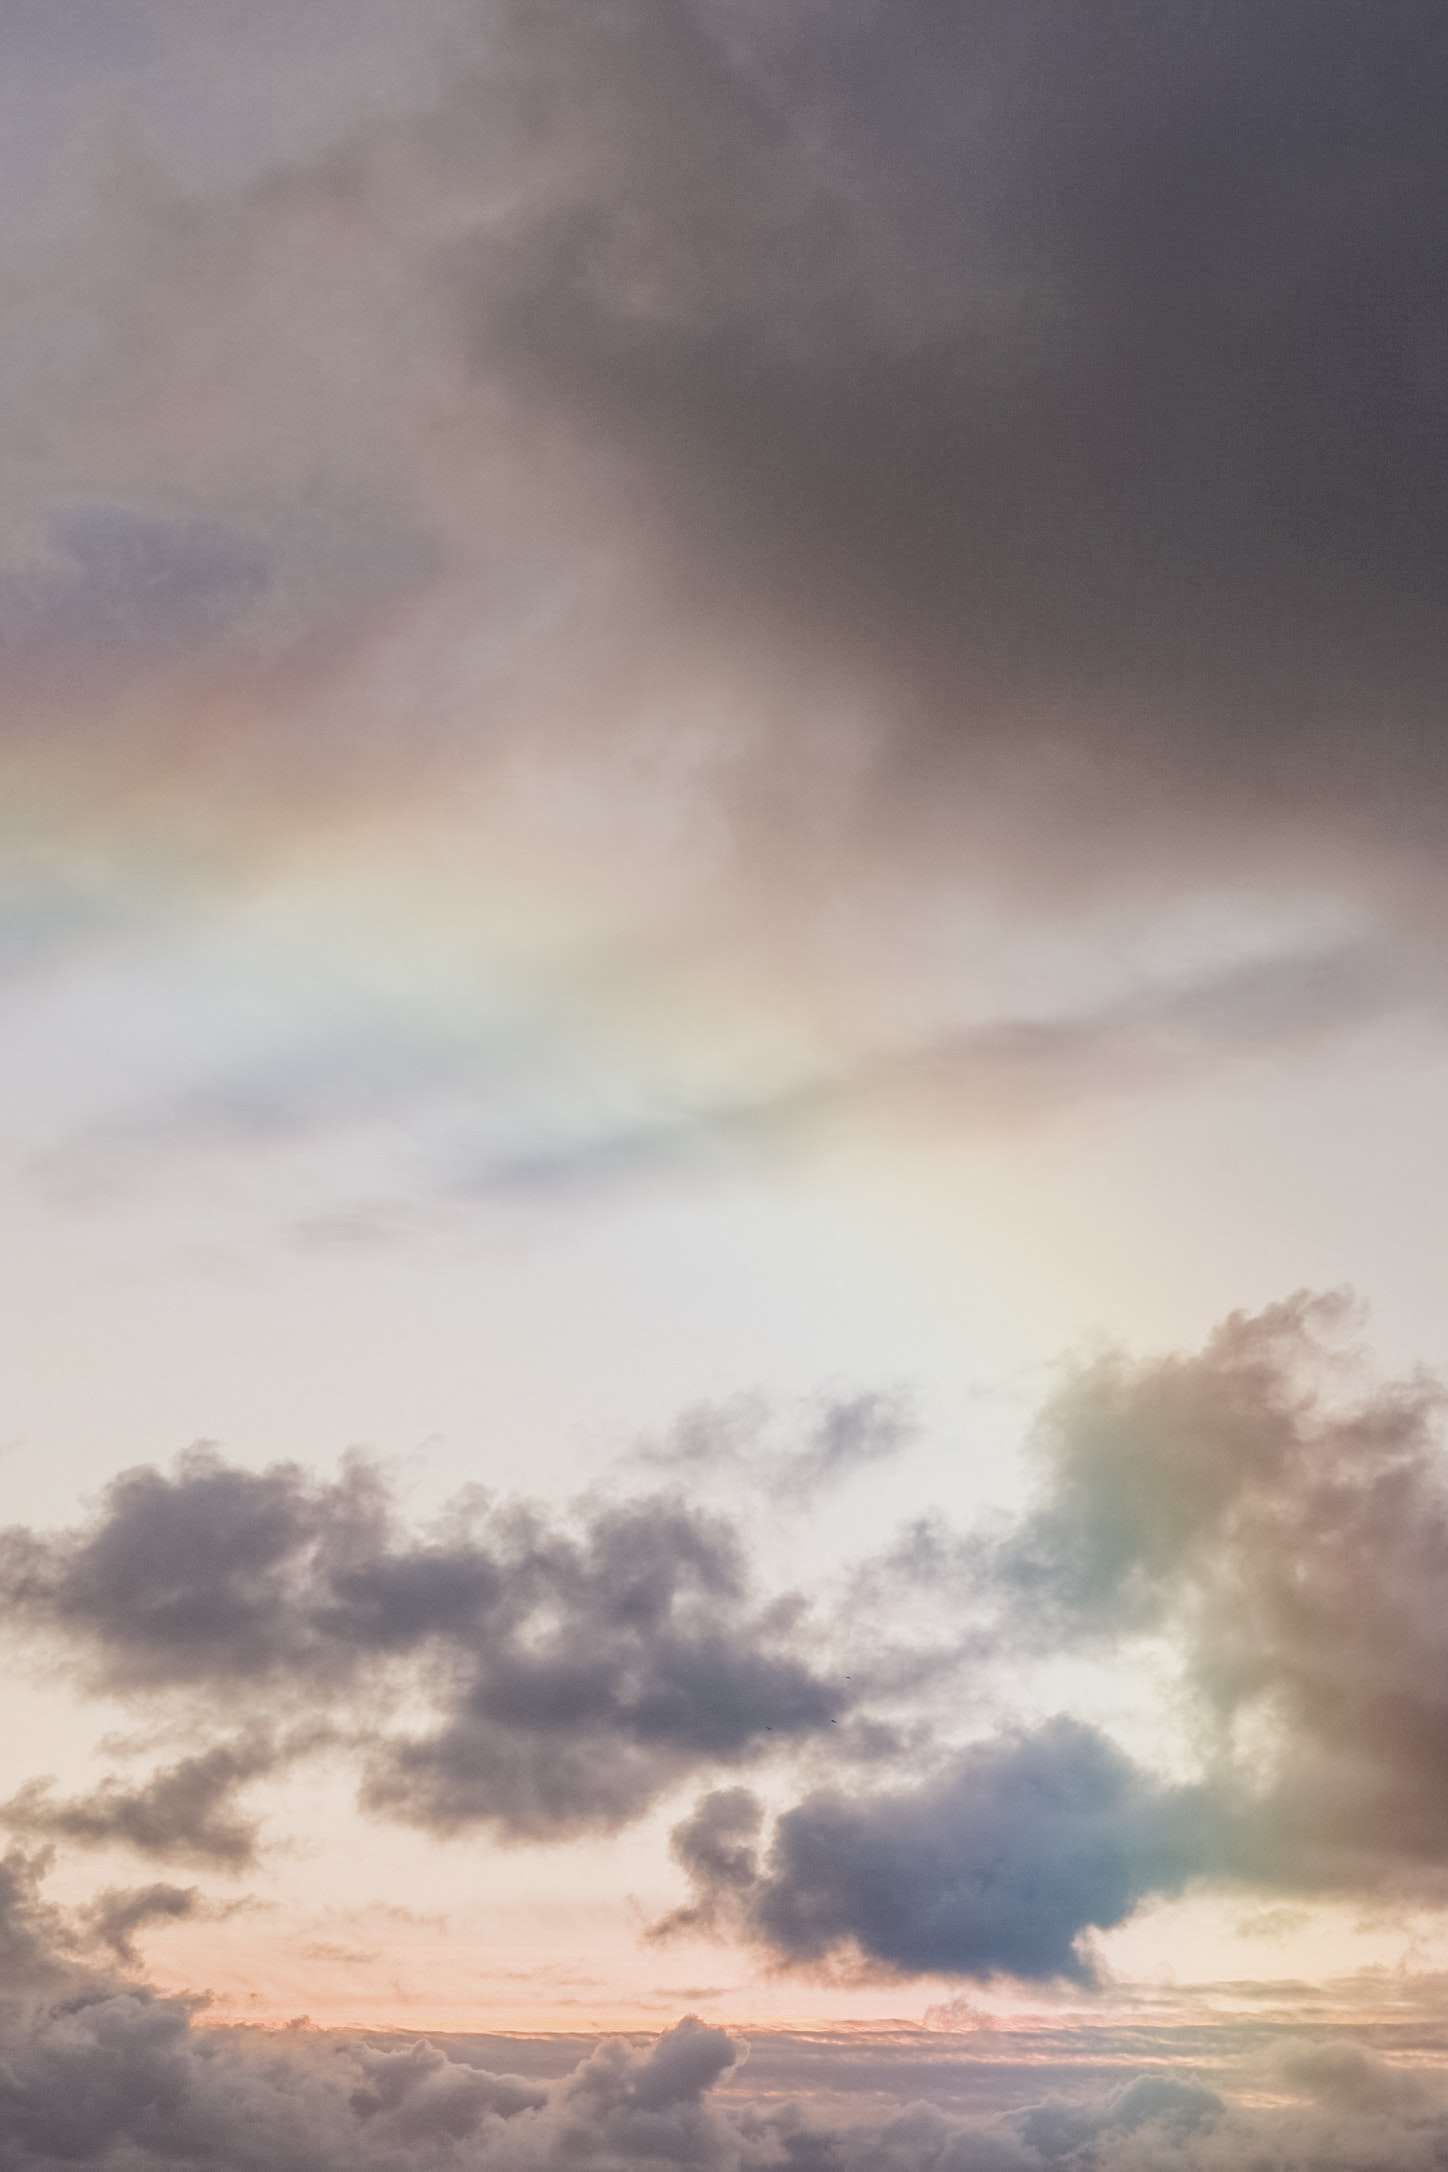 clouds against the rainbow